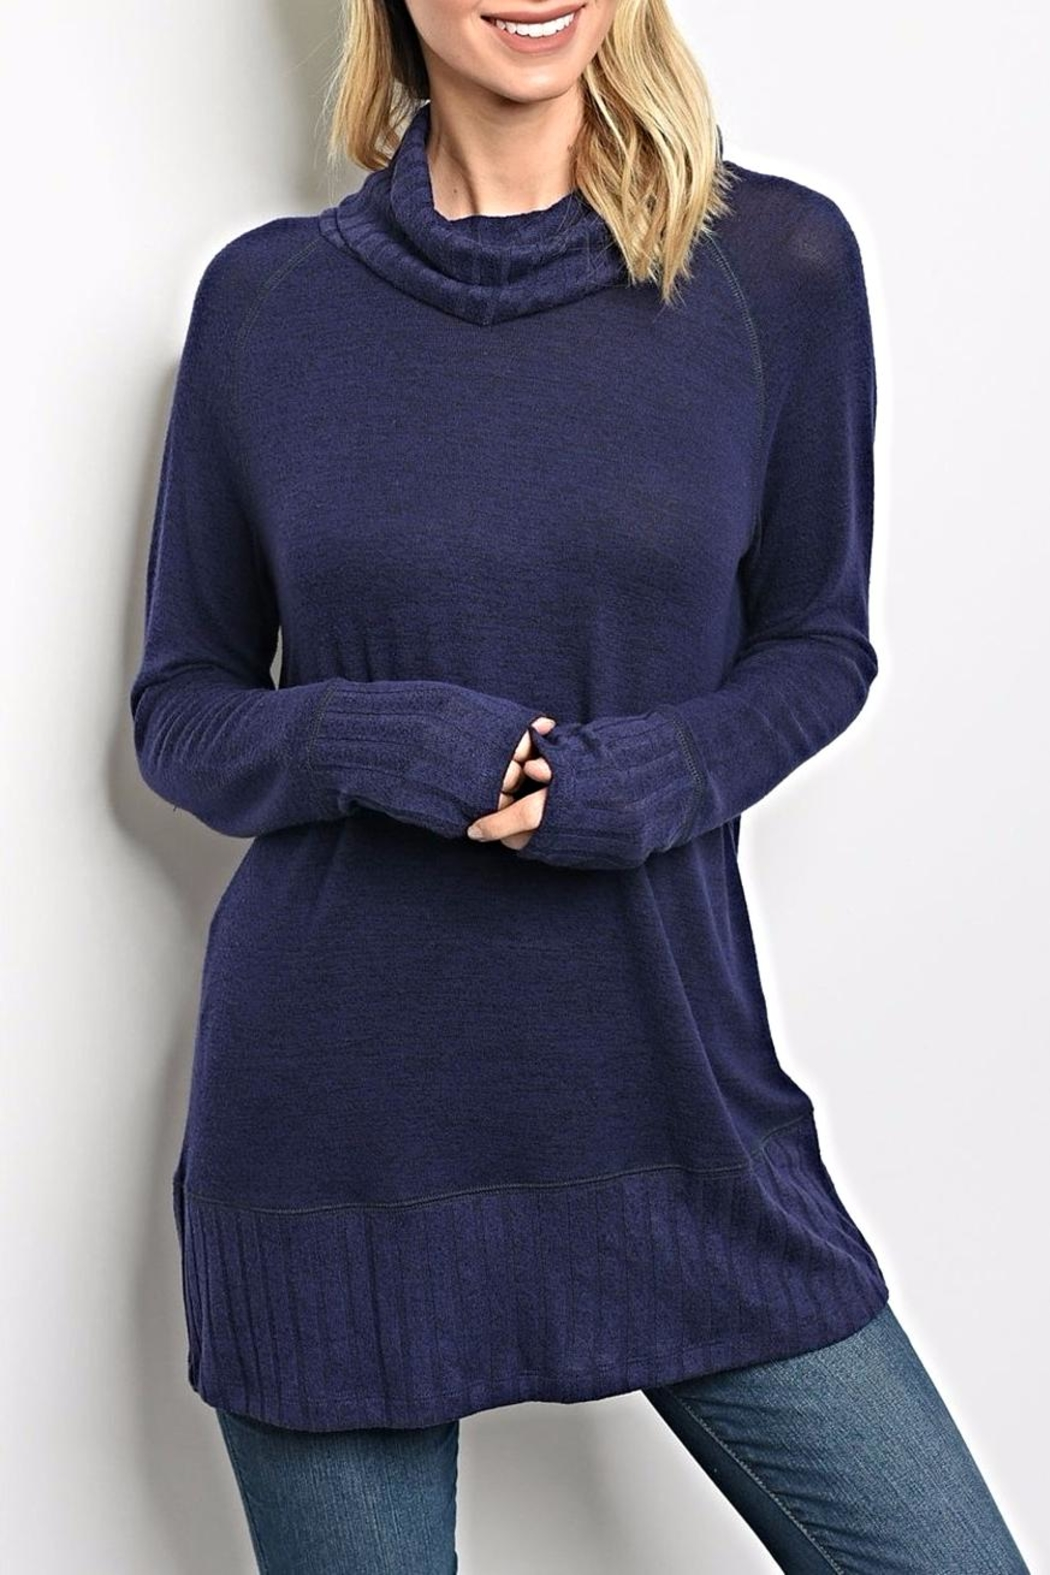 Be Cool Navy Turtleneck Sweater - Main Image